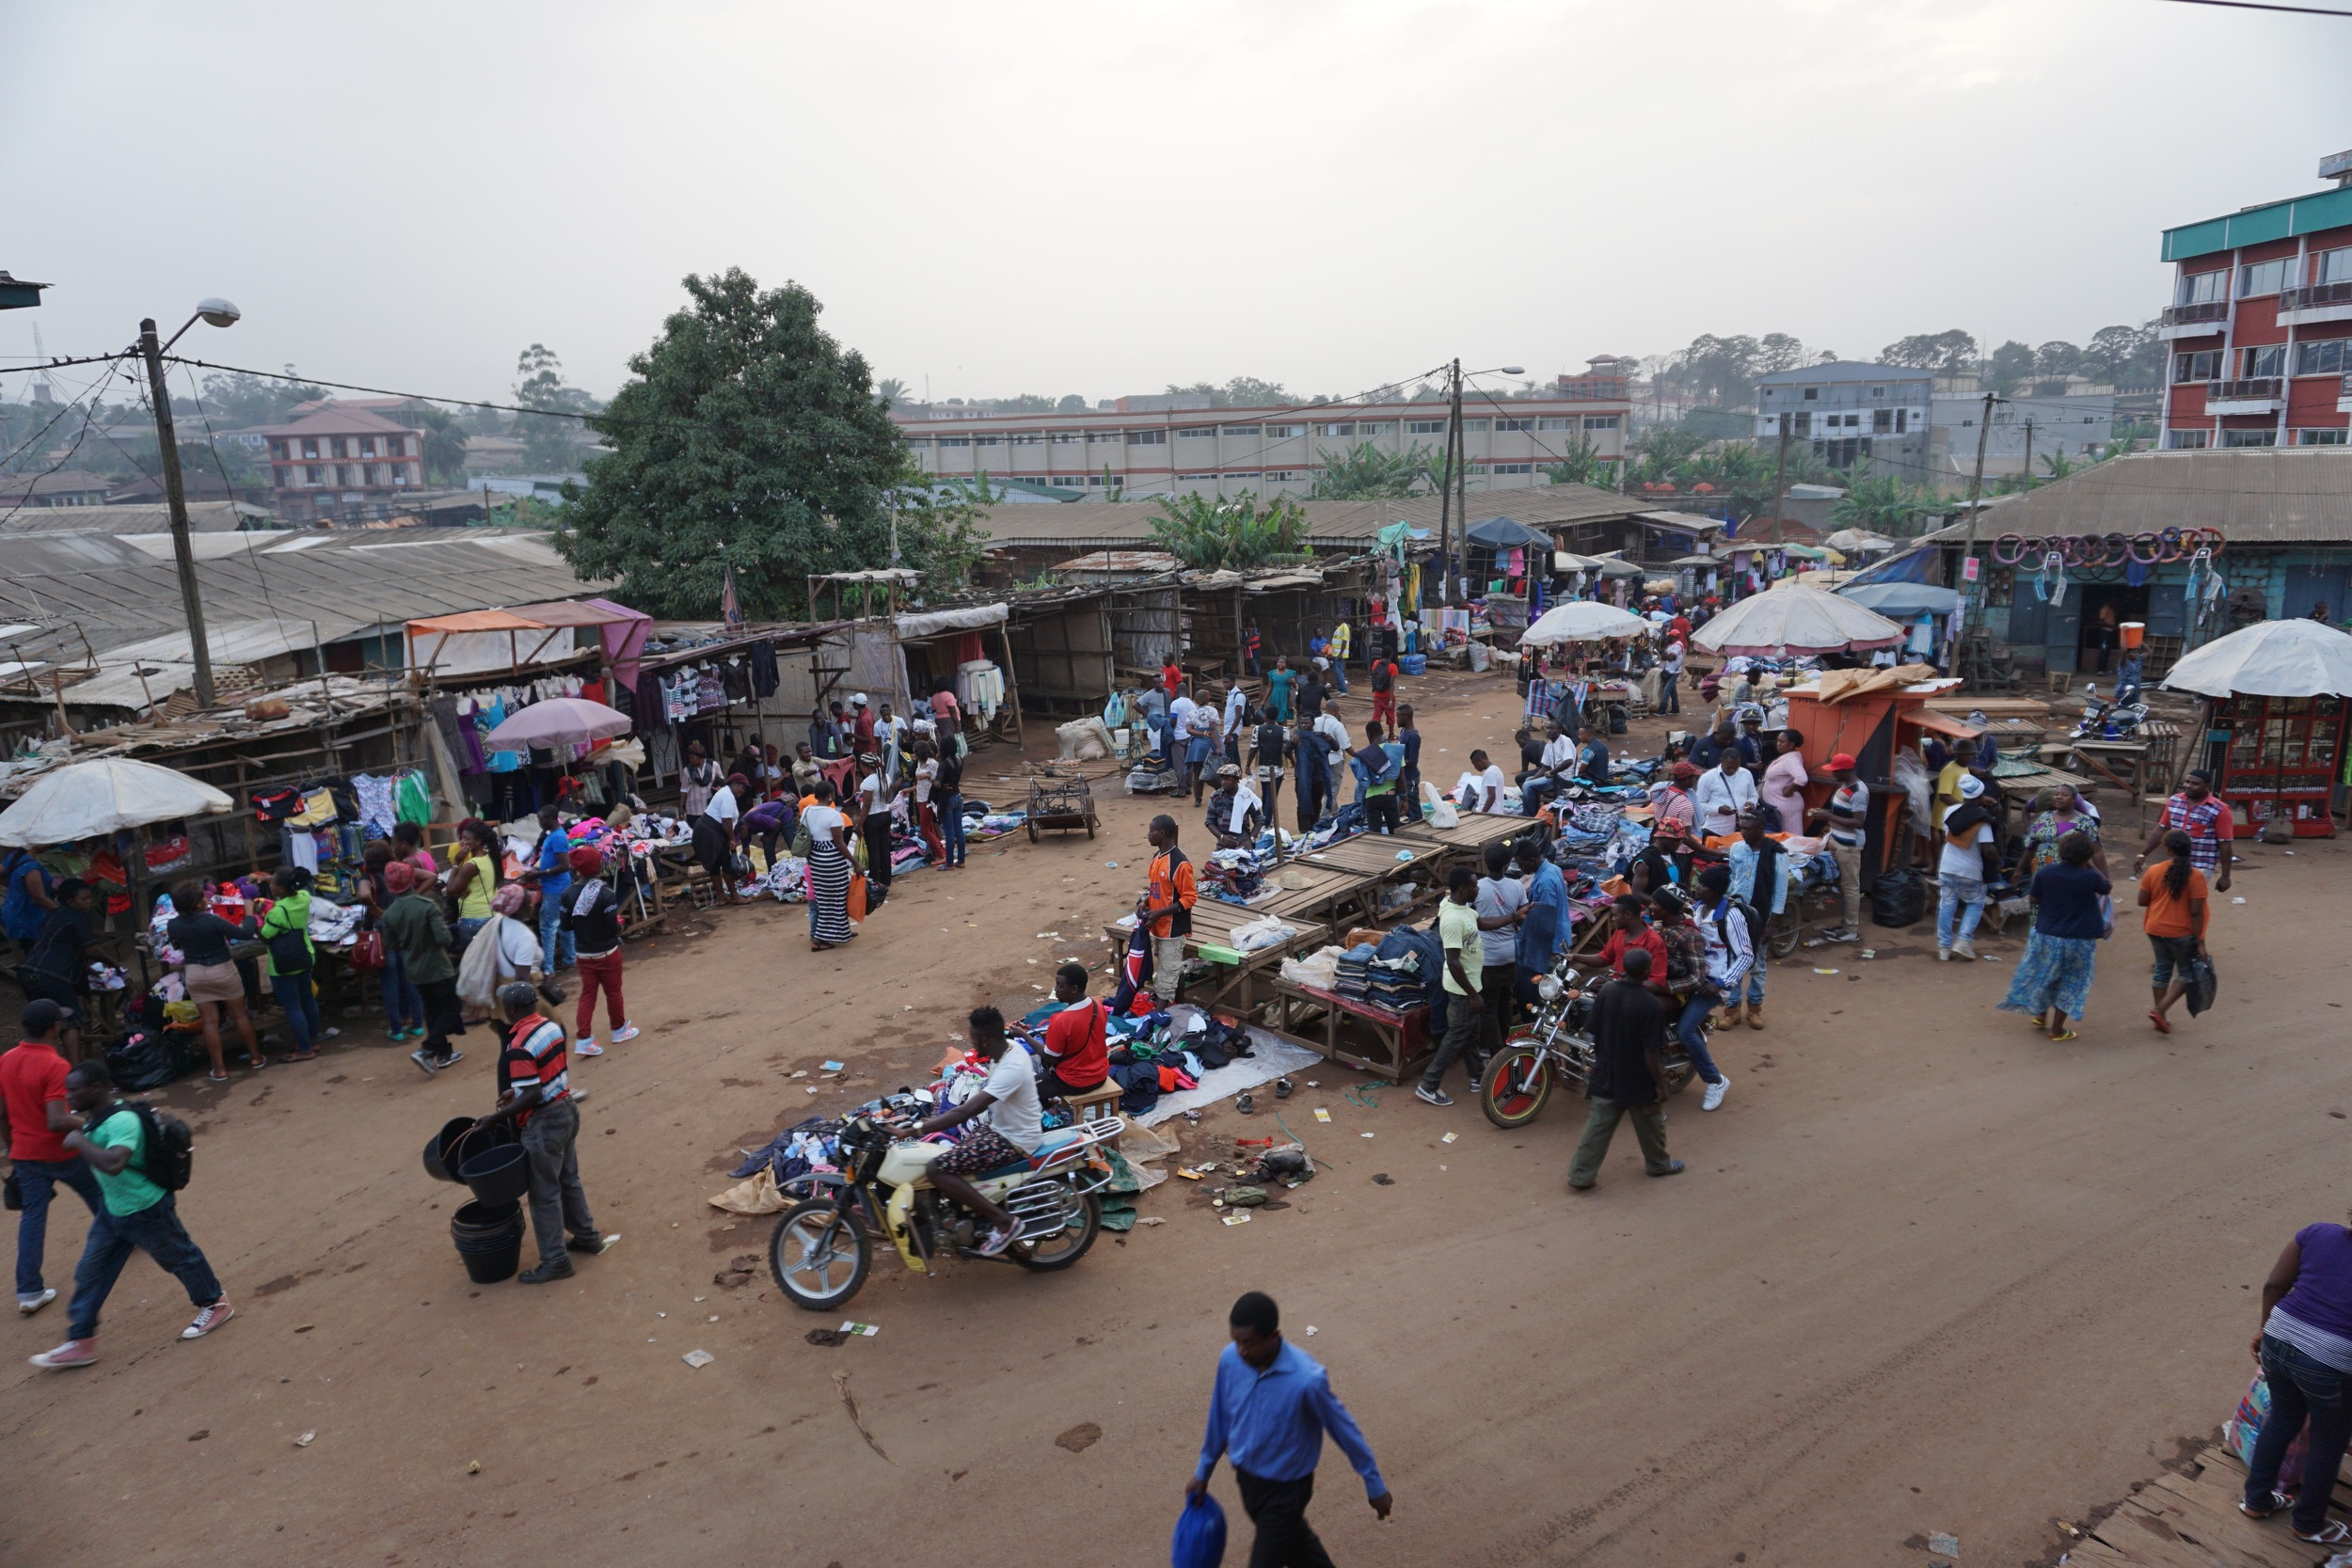 A local marketplace in Bamenda, Cameroon, where shop owners sell excess second-hand clothing received from relief agencies (2016).